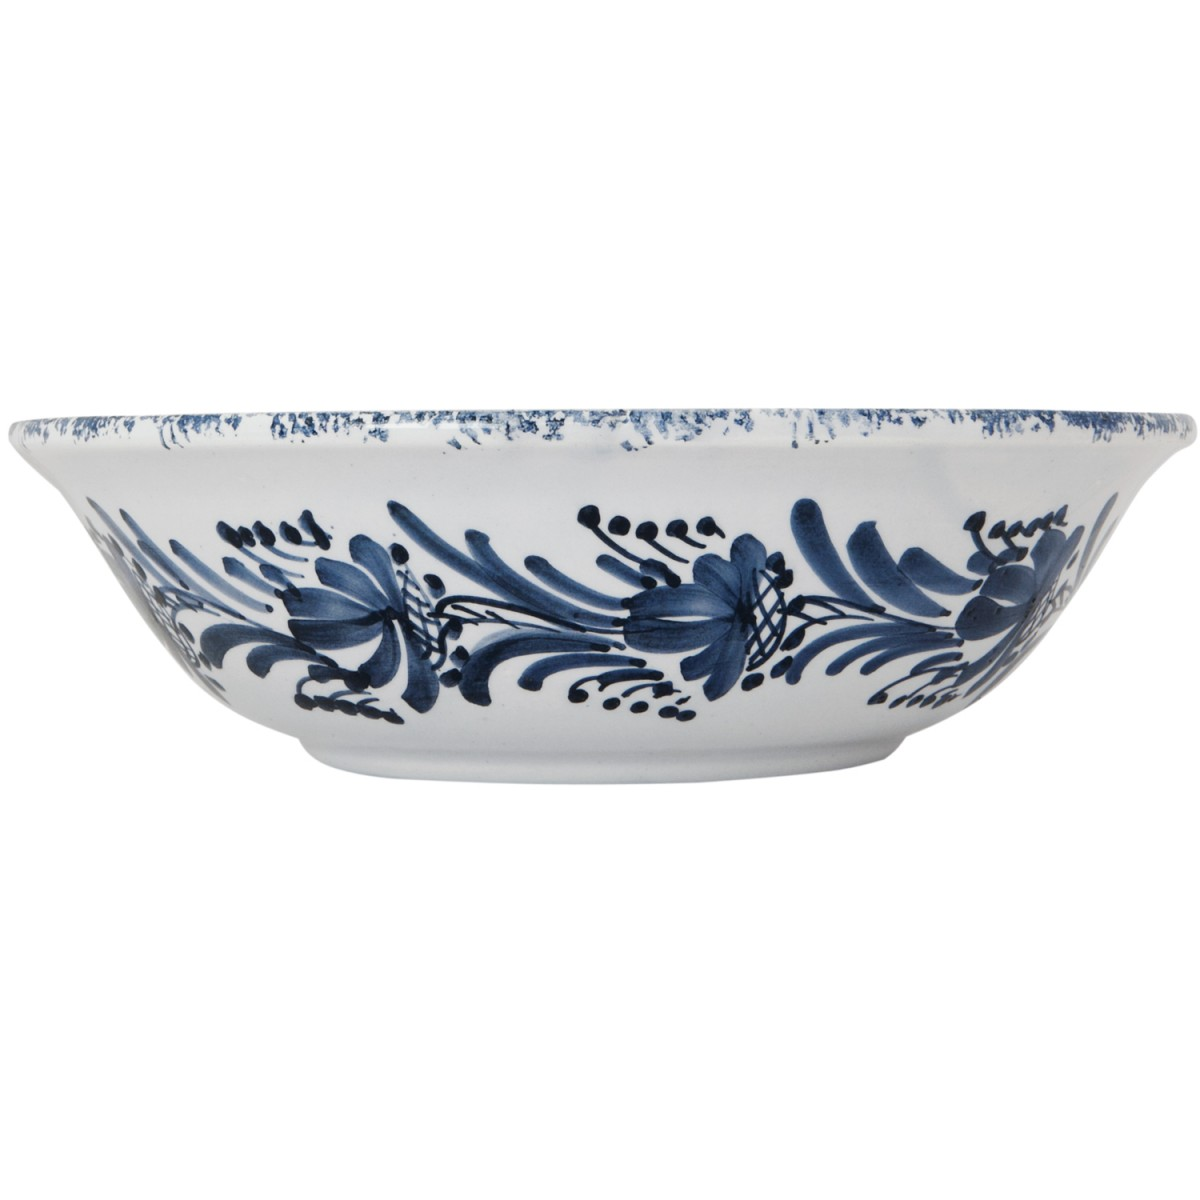 Decorative Bowls for Tables | Blue White Flower Wreath | Skyriana pottery-1